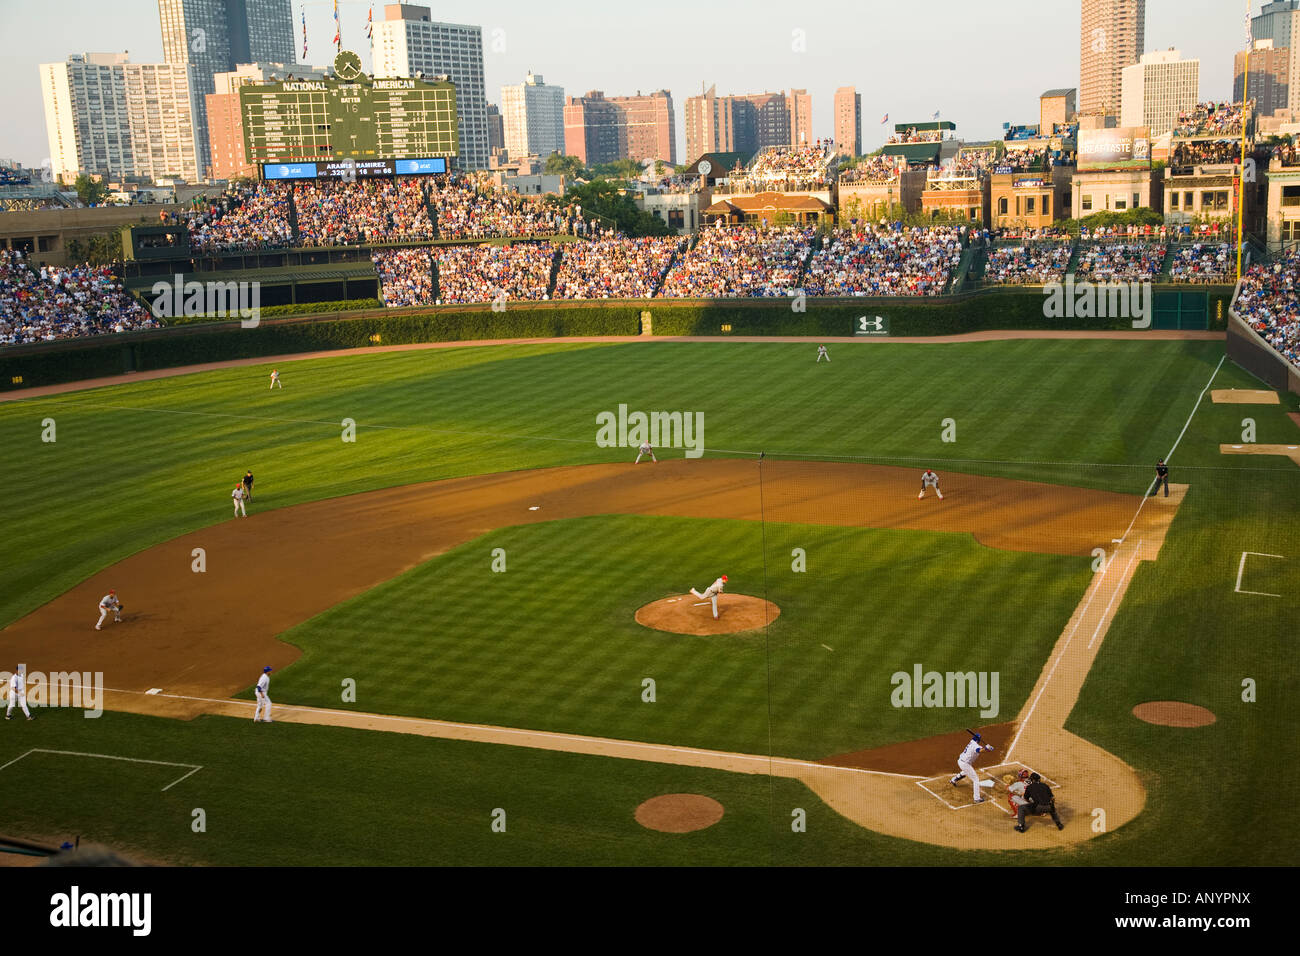 Wrigley field stock photos wrigley field stock images alamy illinois chicago crowd in stands wrigley field watching night game stadium chicago cubs baseball team bleachers amipublicfo Gallery